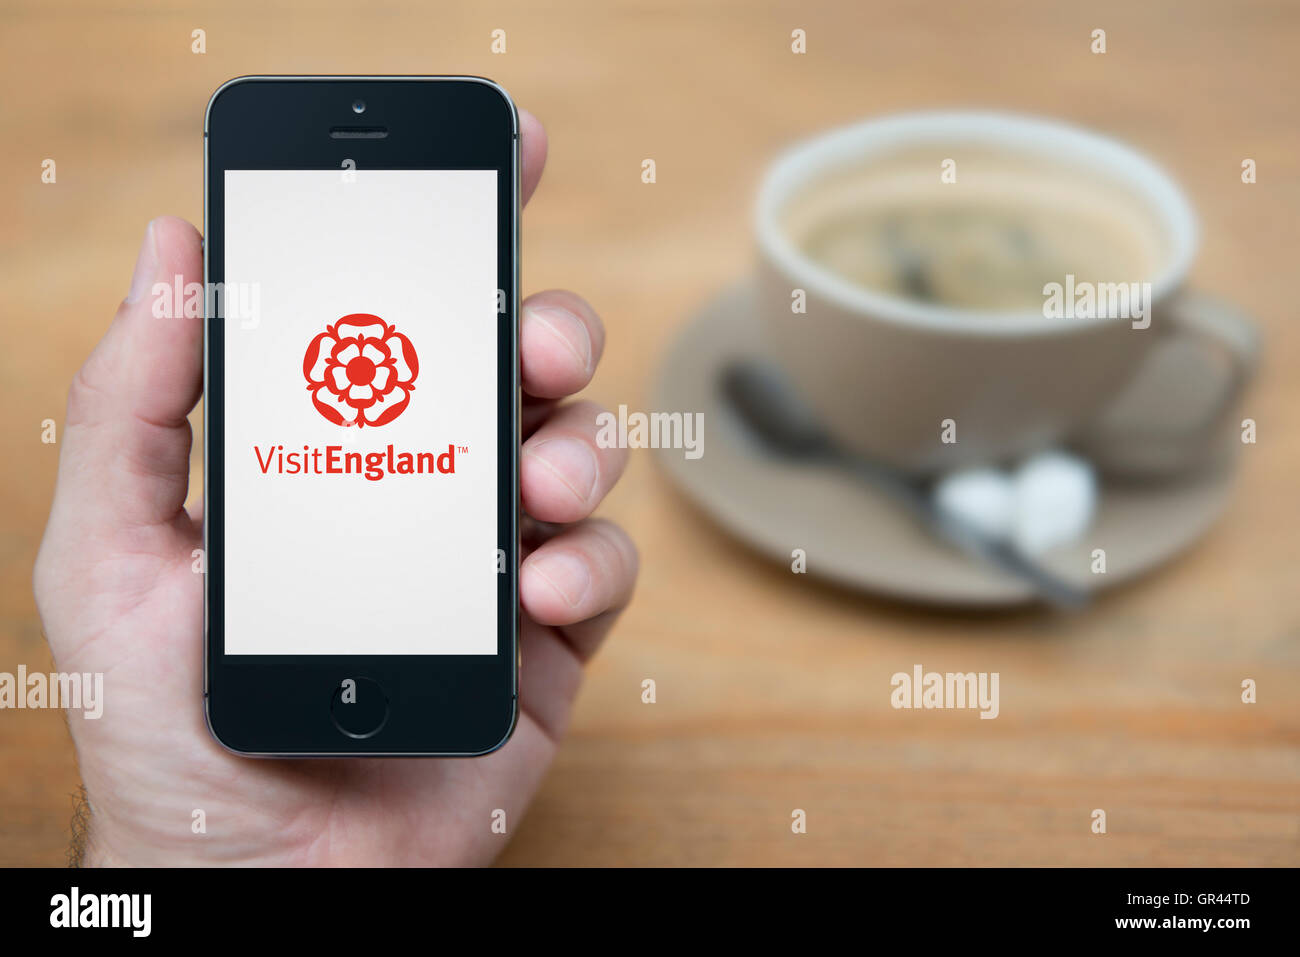 A man looks at his iPhone which displays the Visit England logo (Editorial use only). - Stock Image